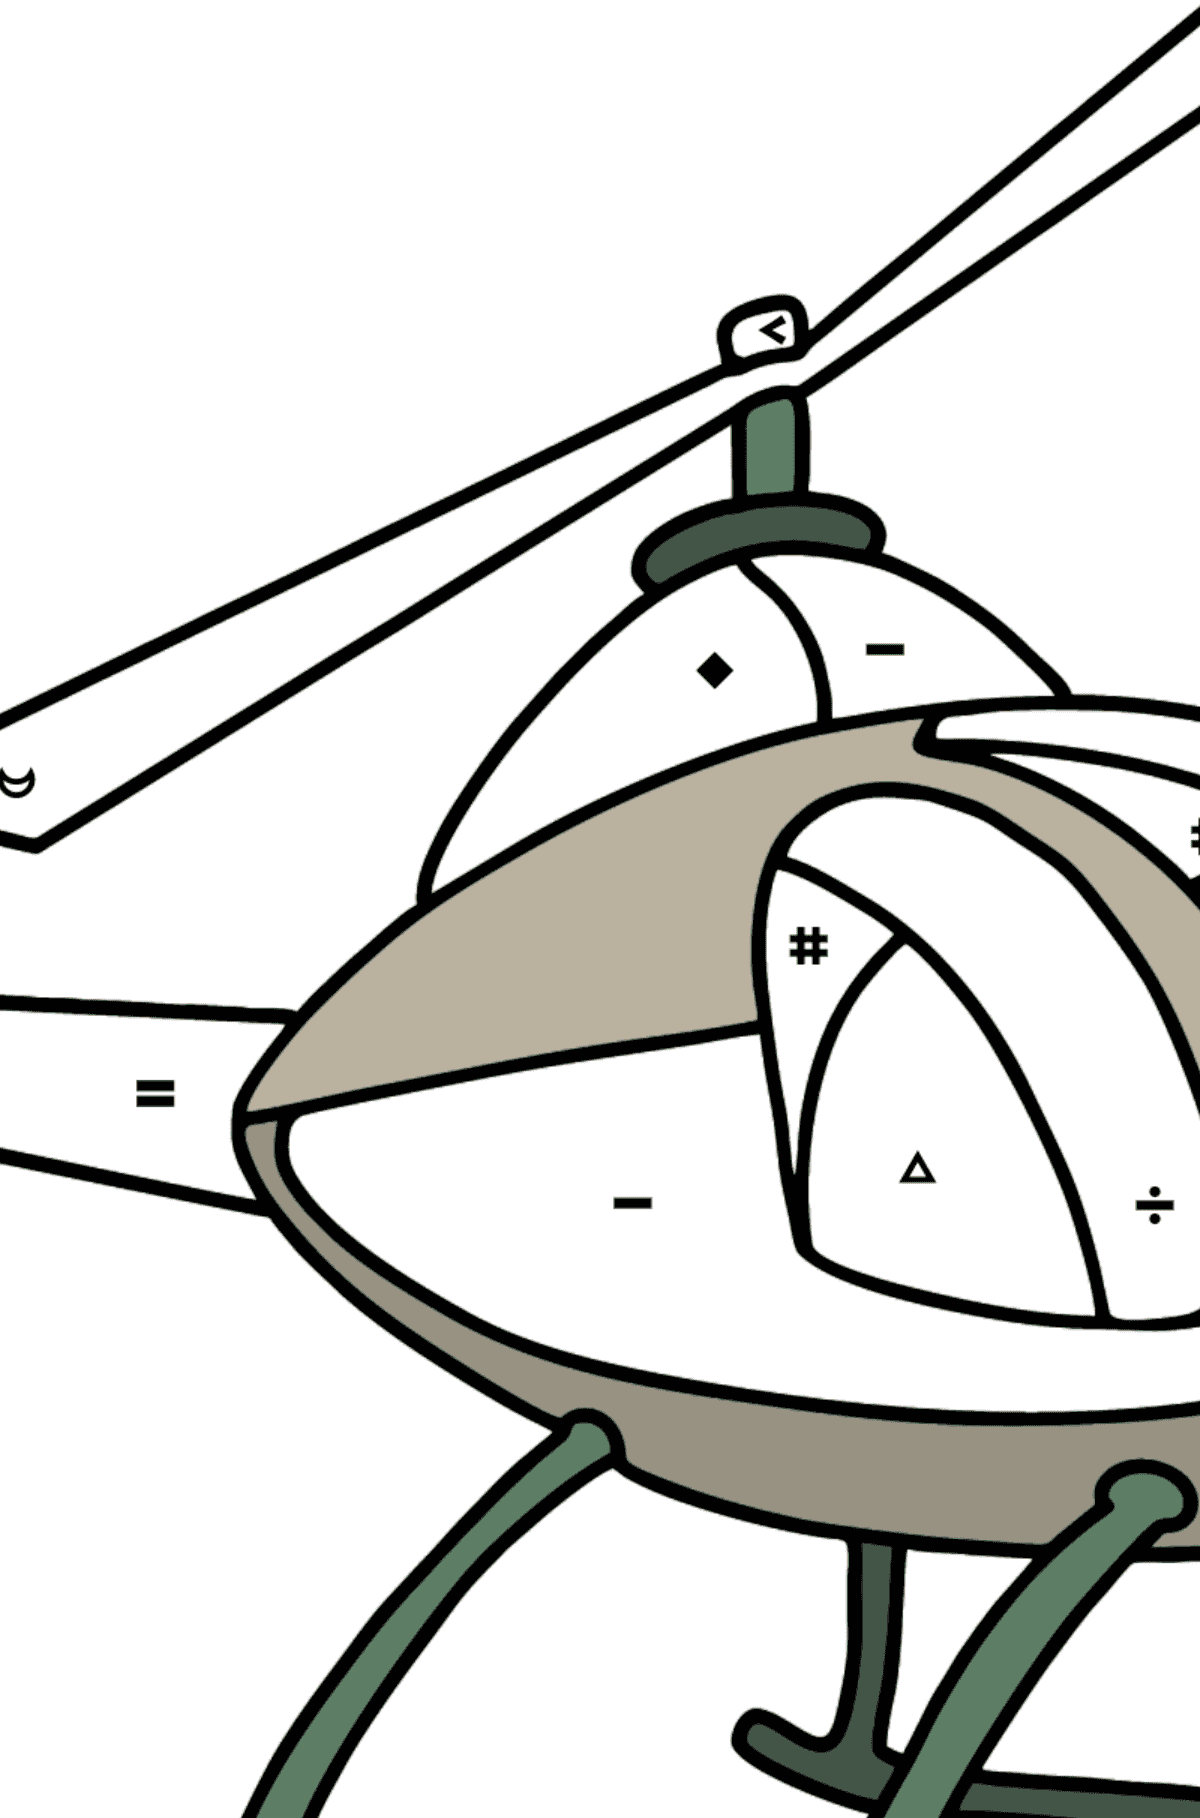 Helicopter coloring page for kids - Coloring by Symbols for Kids